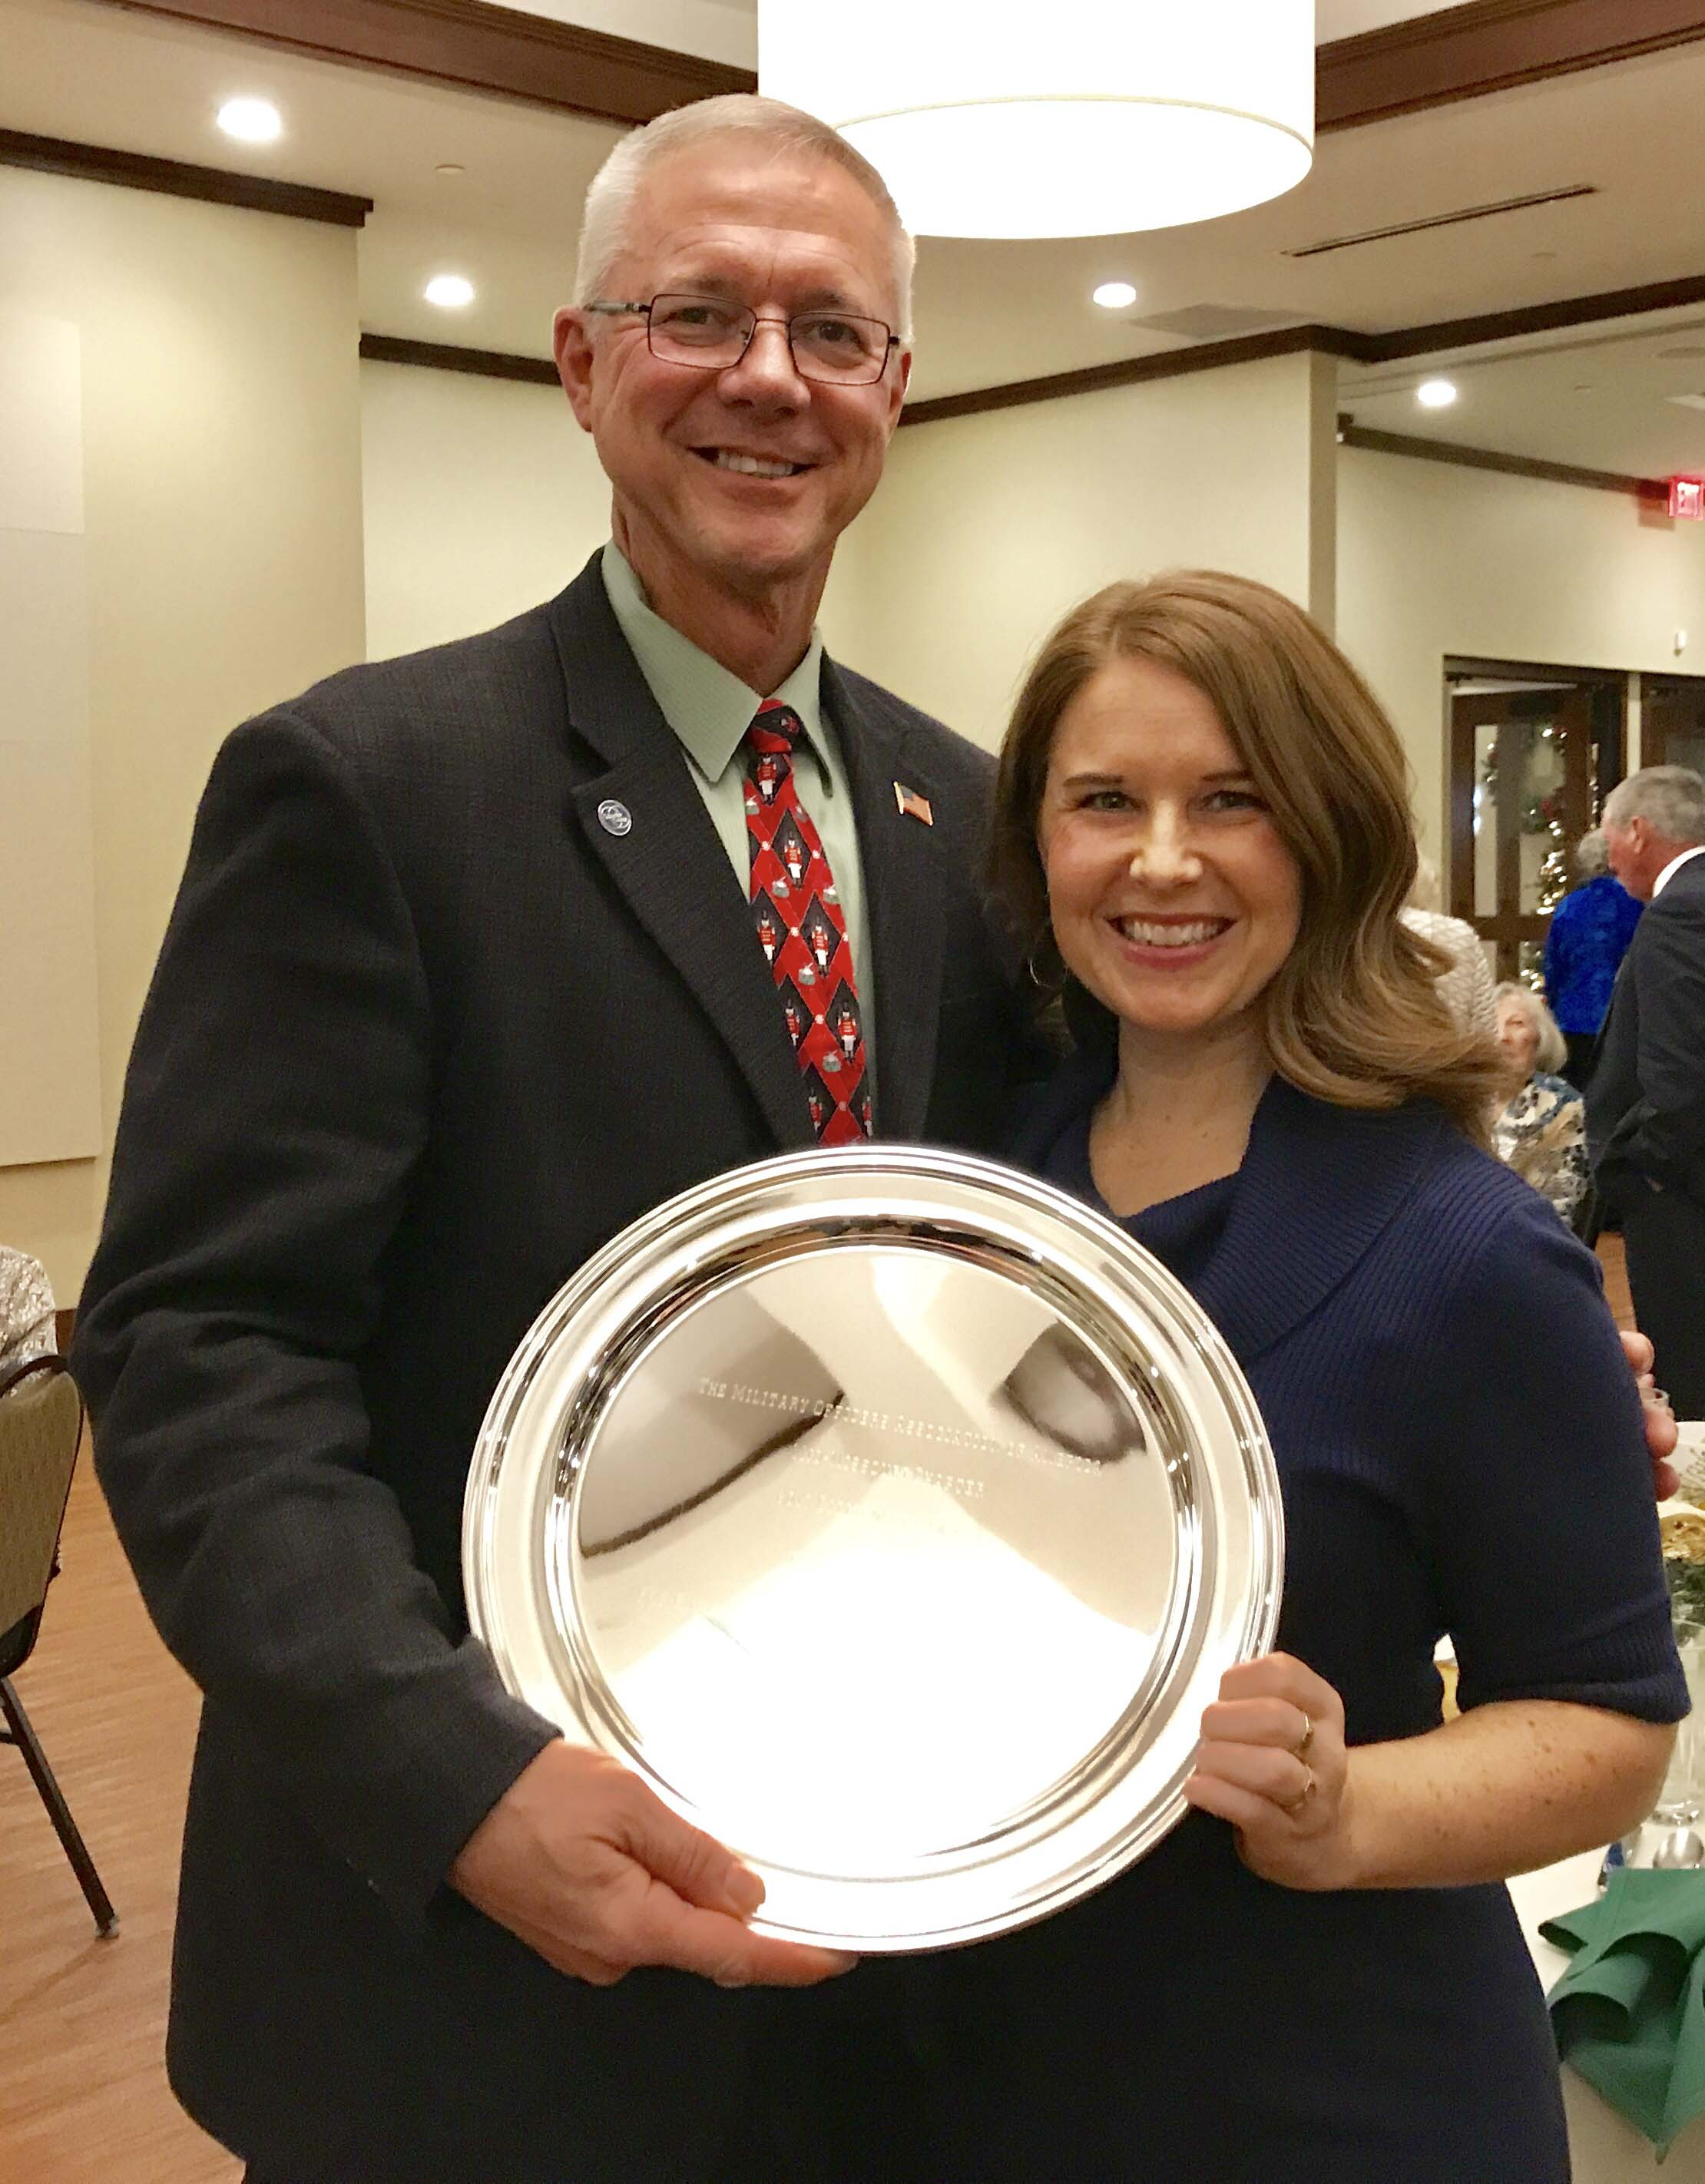 Donelson named MOAA chapter Citizen of the Year